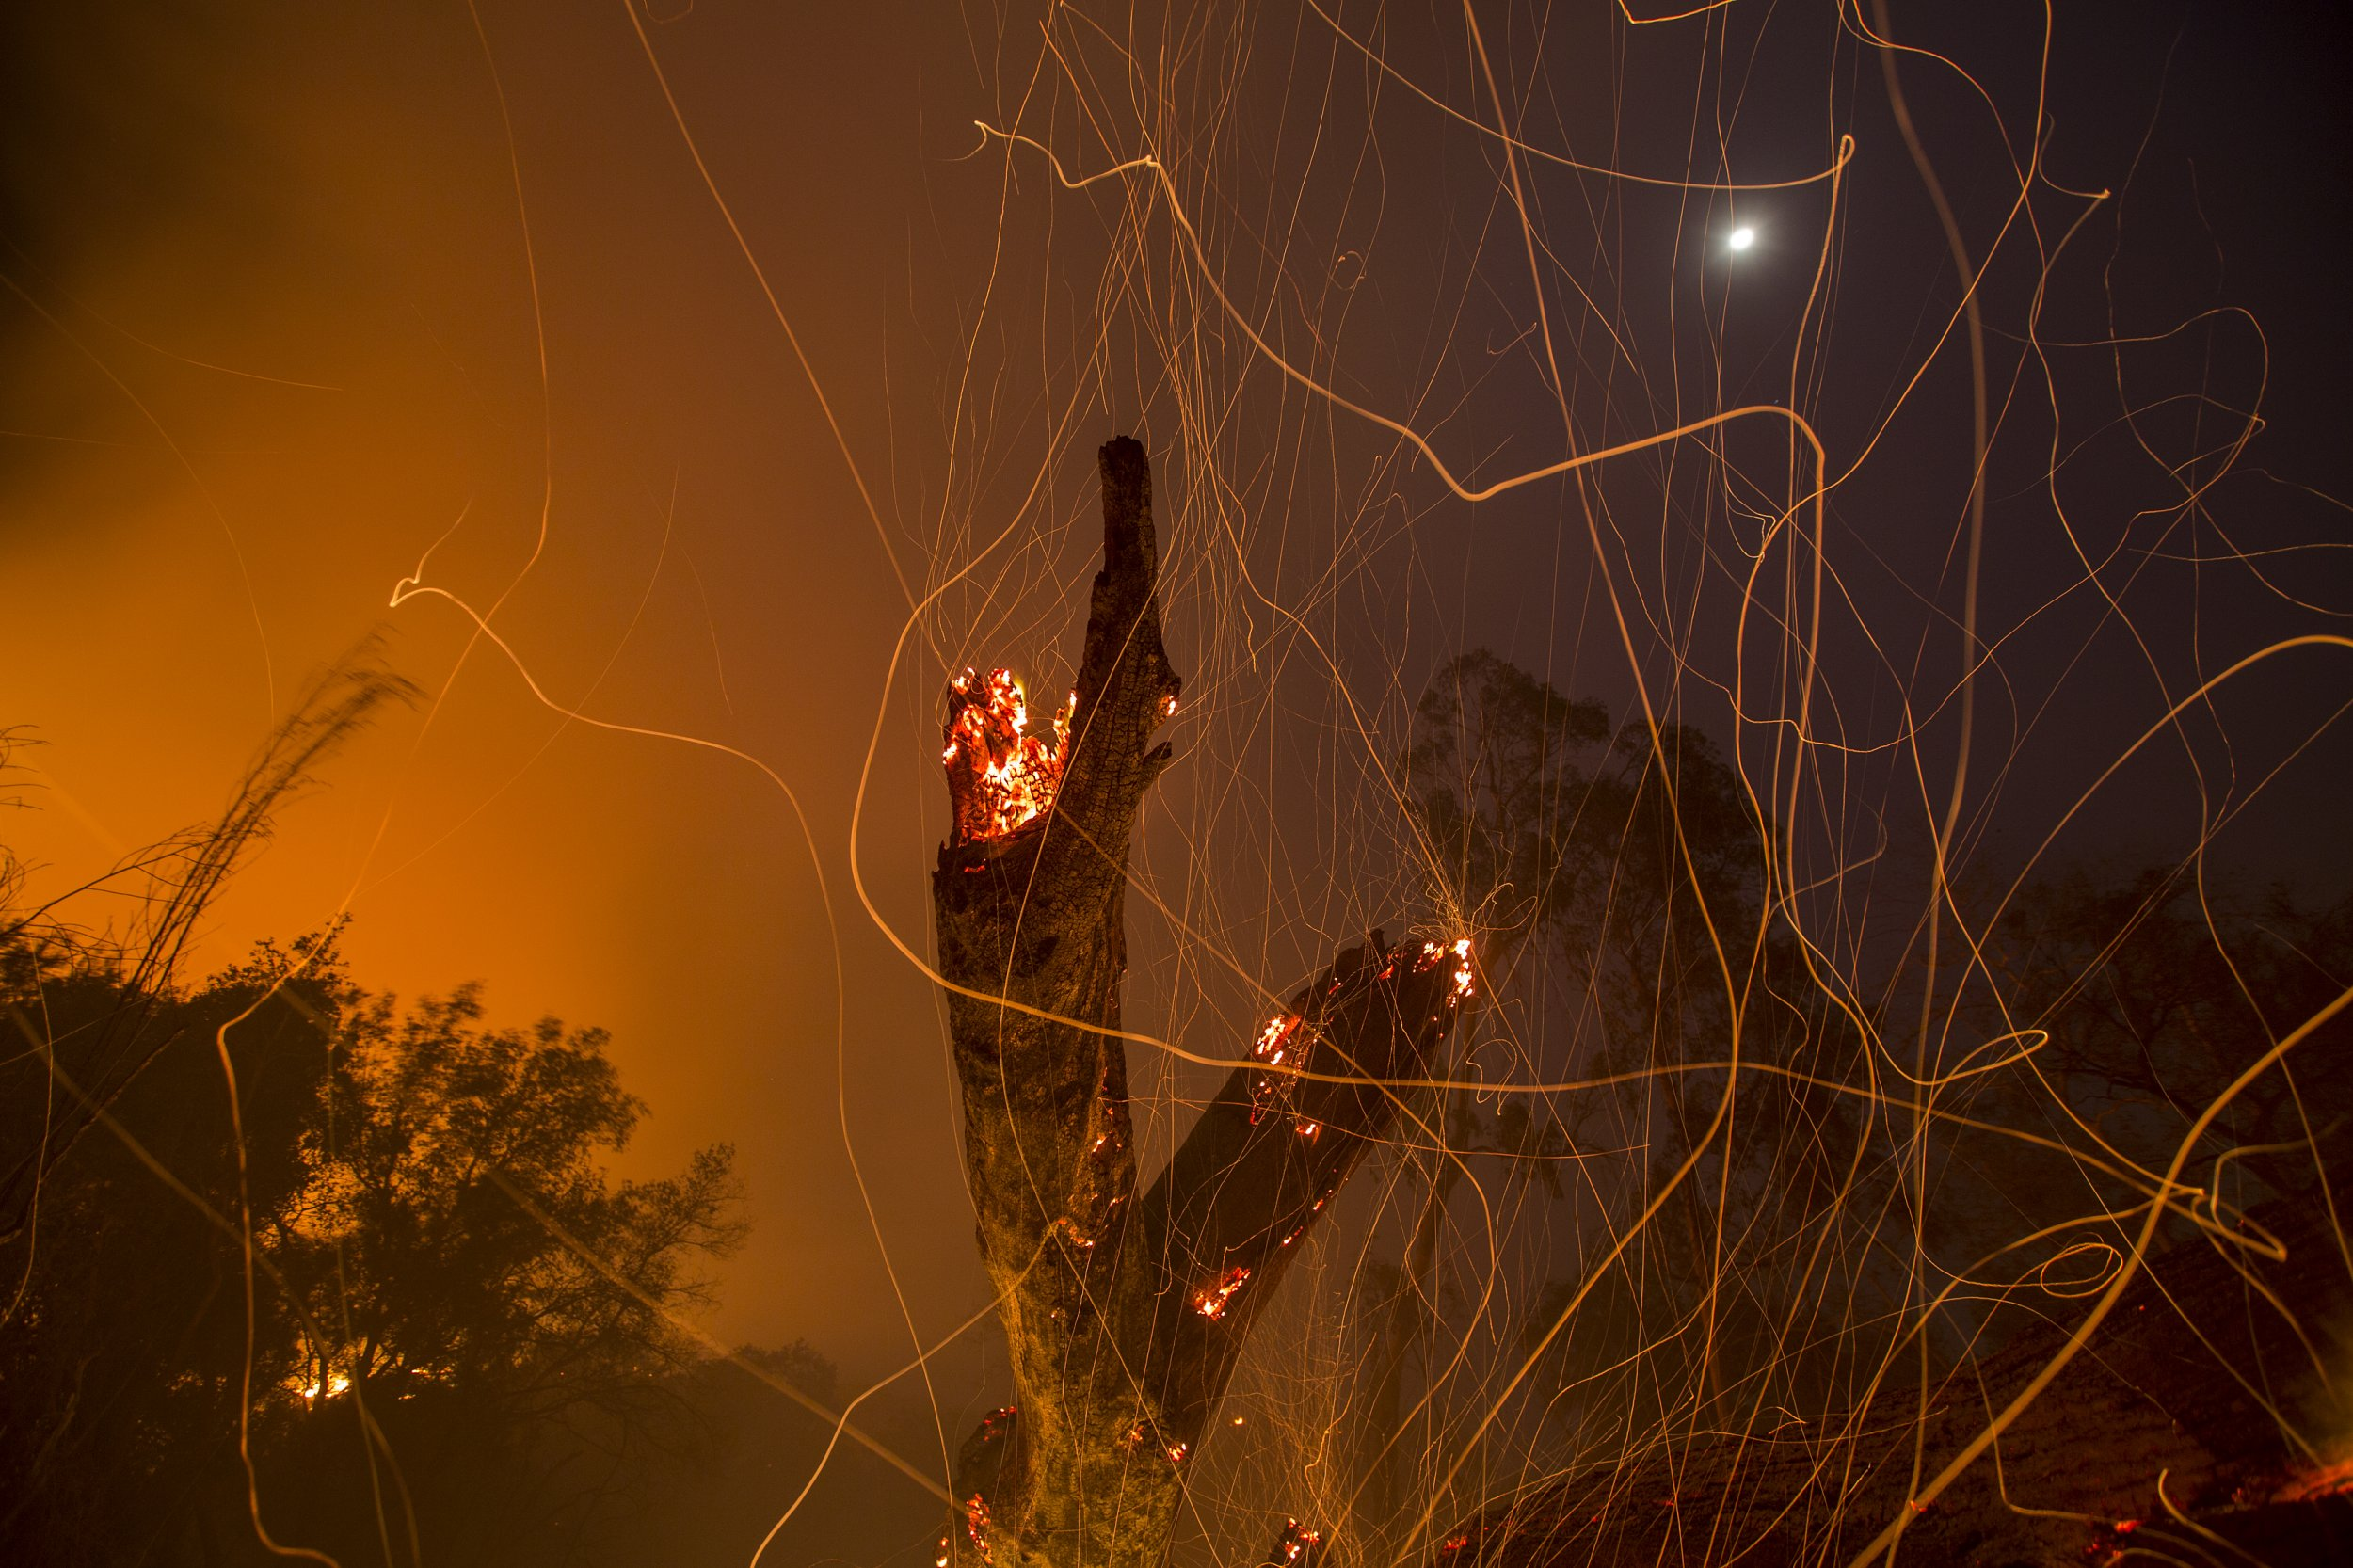 San Diego County Wildfire Map: Where Are the Fires Still